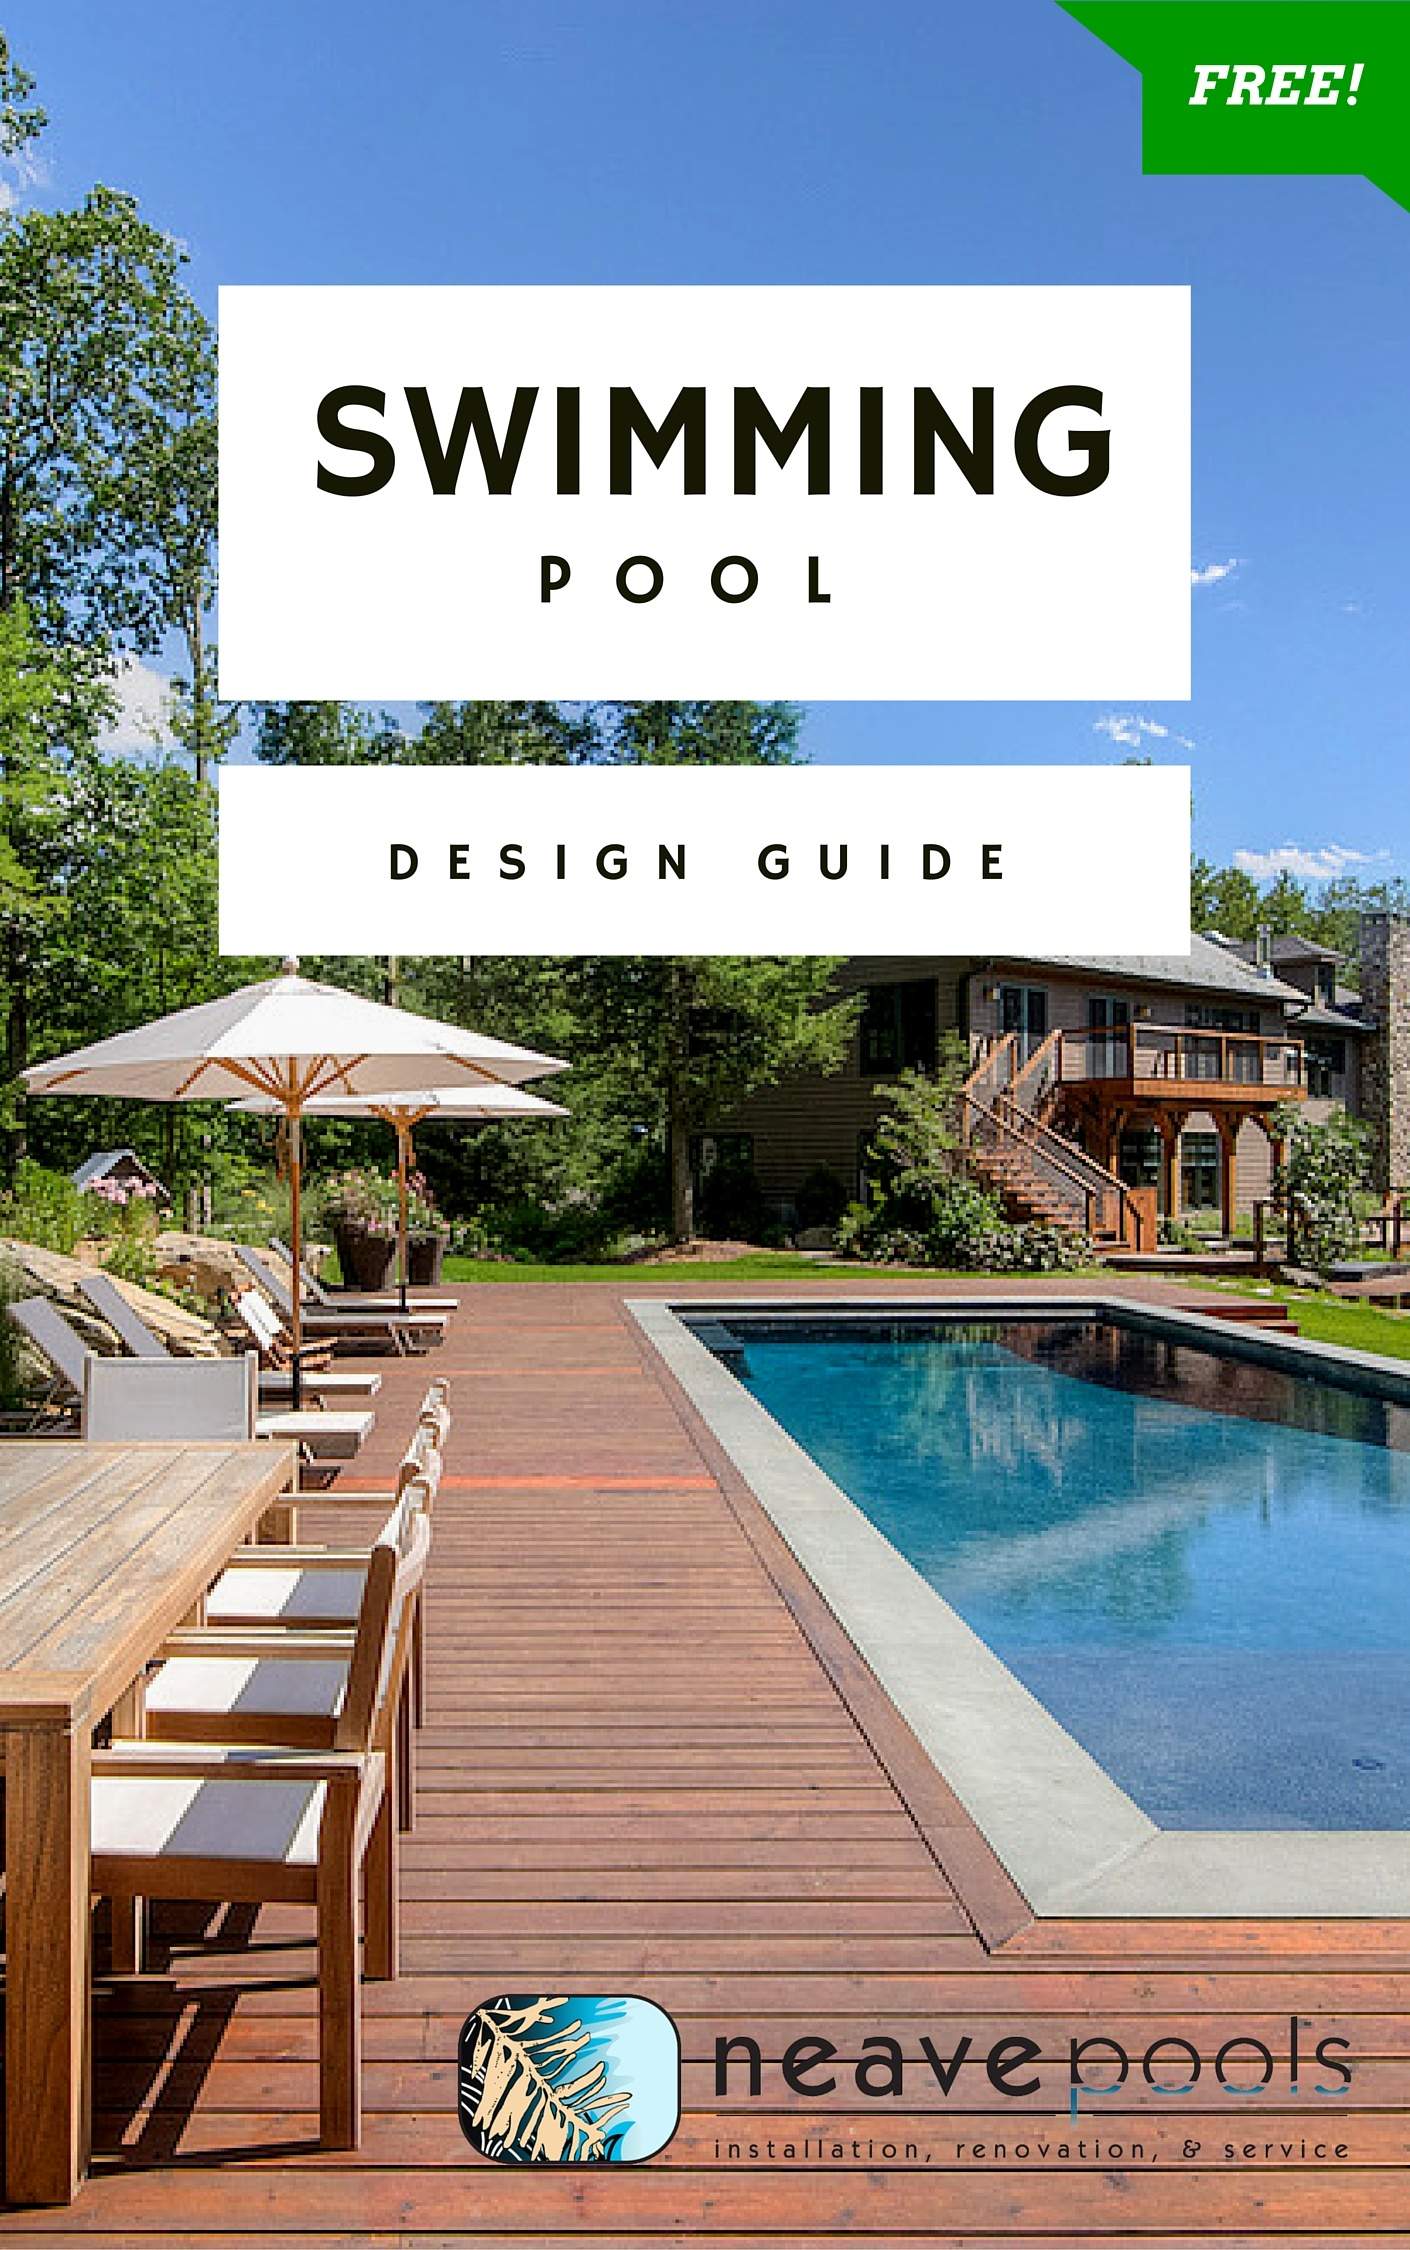 Get Our FREE Guide!